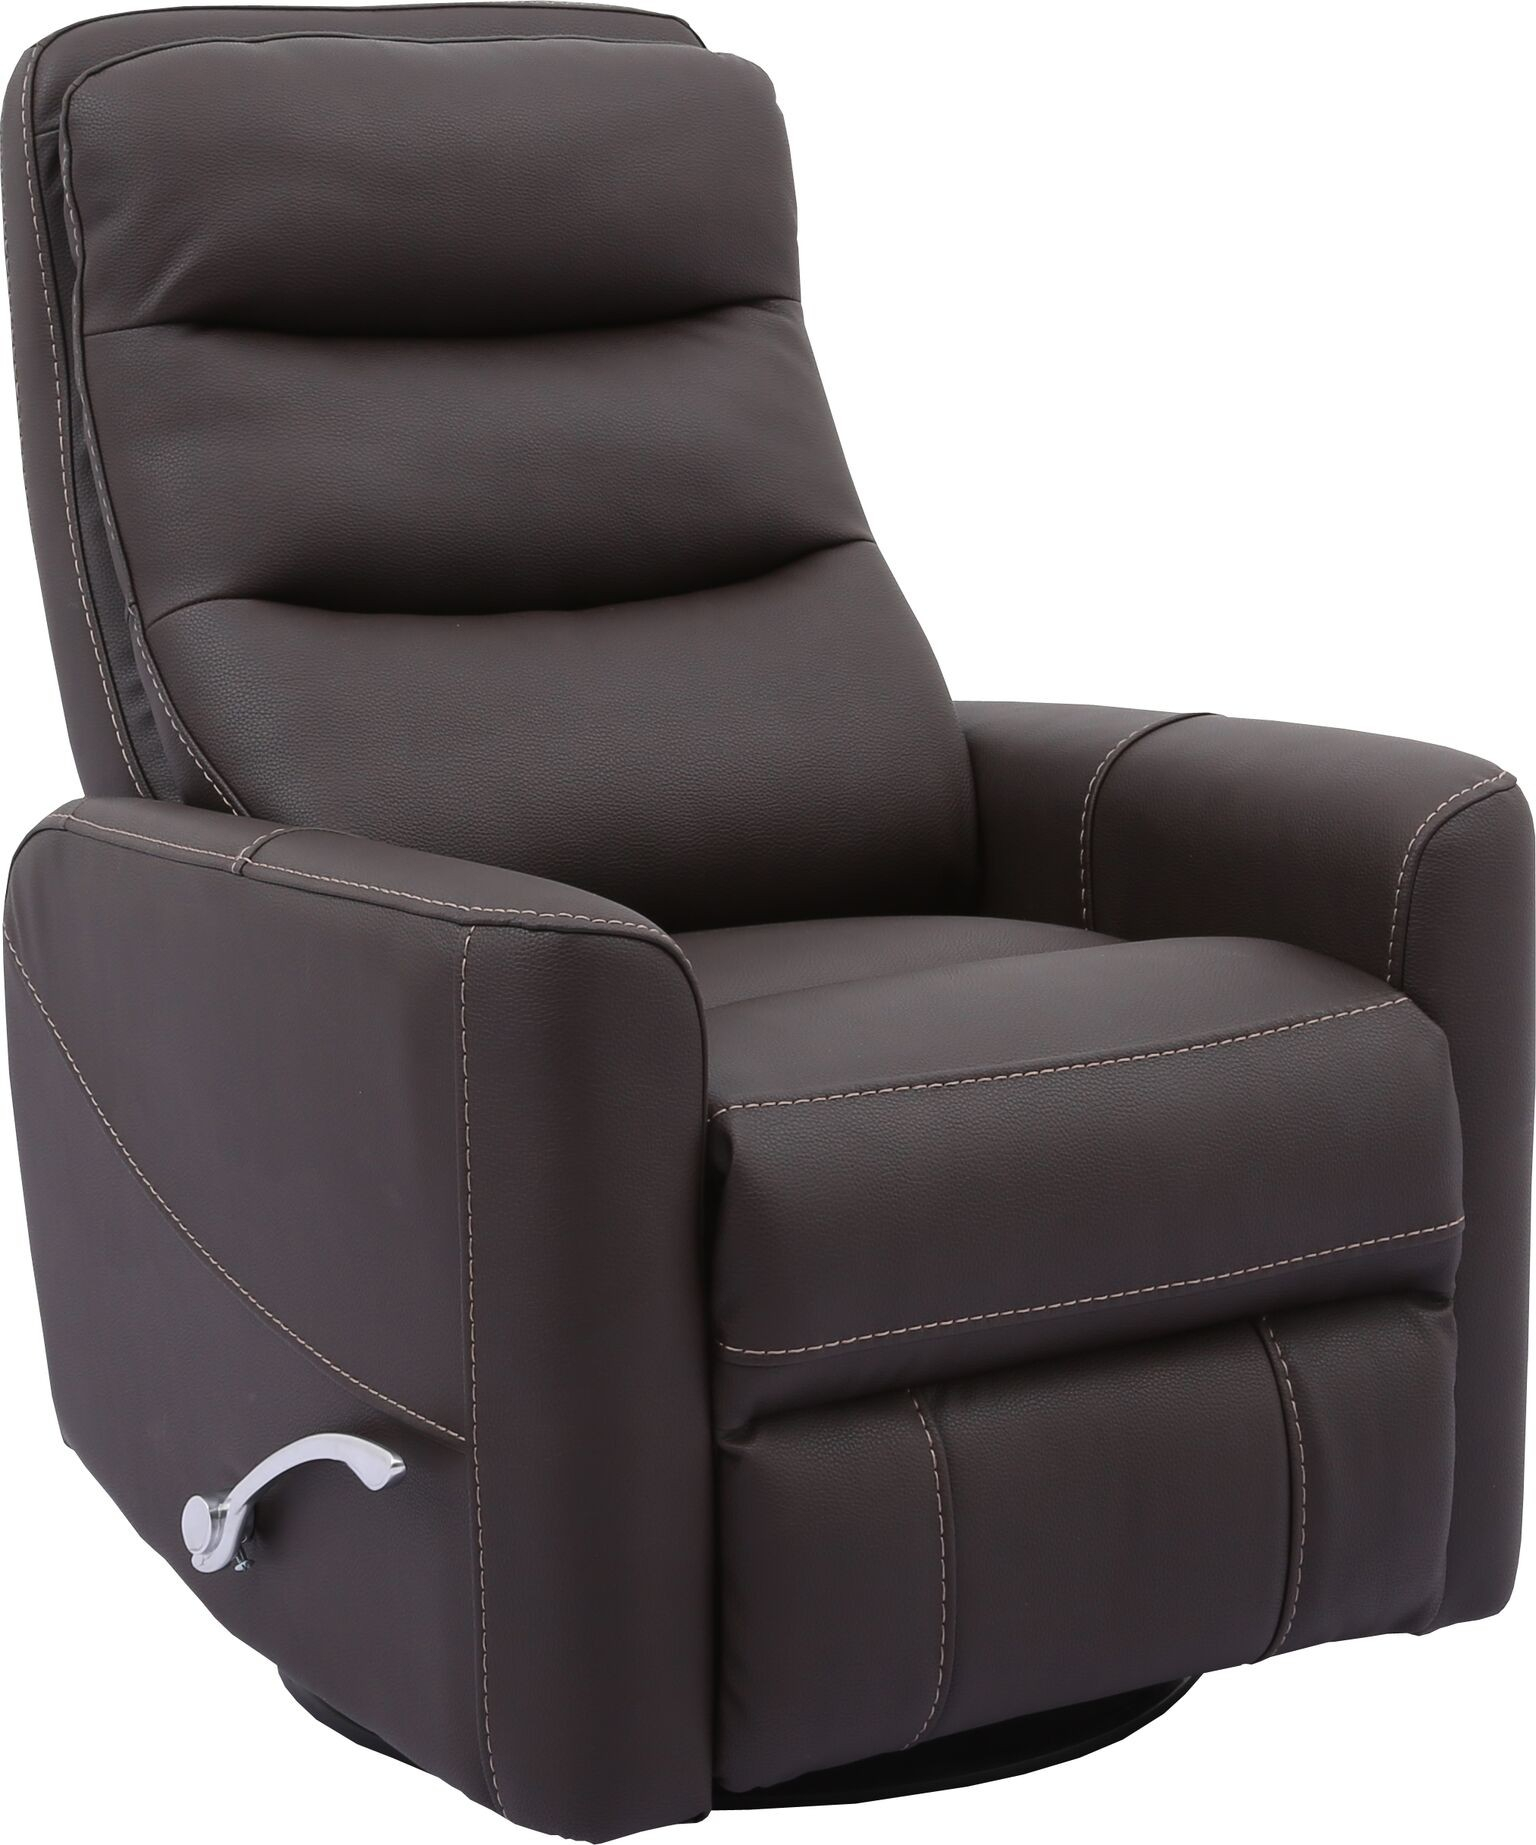 Hercules  Chocolate  Swivel Glider Recliner With Articulating Headrest For Hercules Oyster Swivel Glider Recliners (Image 6 of 20)